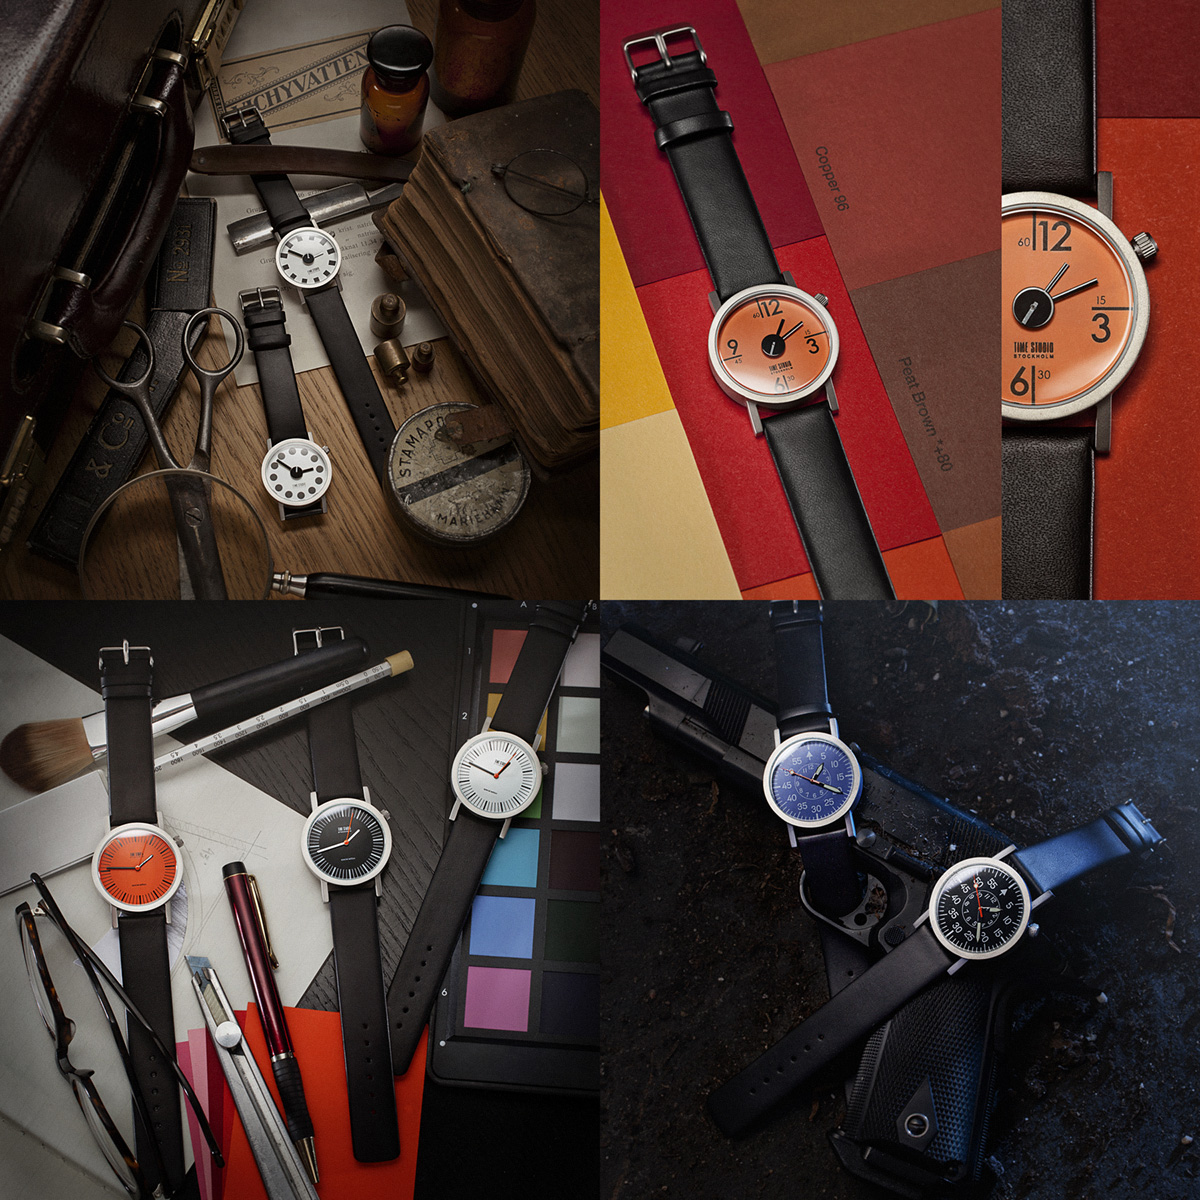 'Time Studio' watches